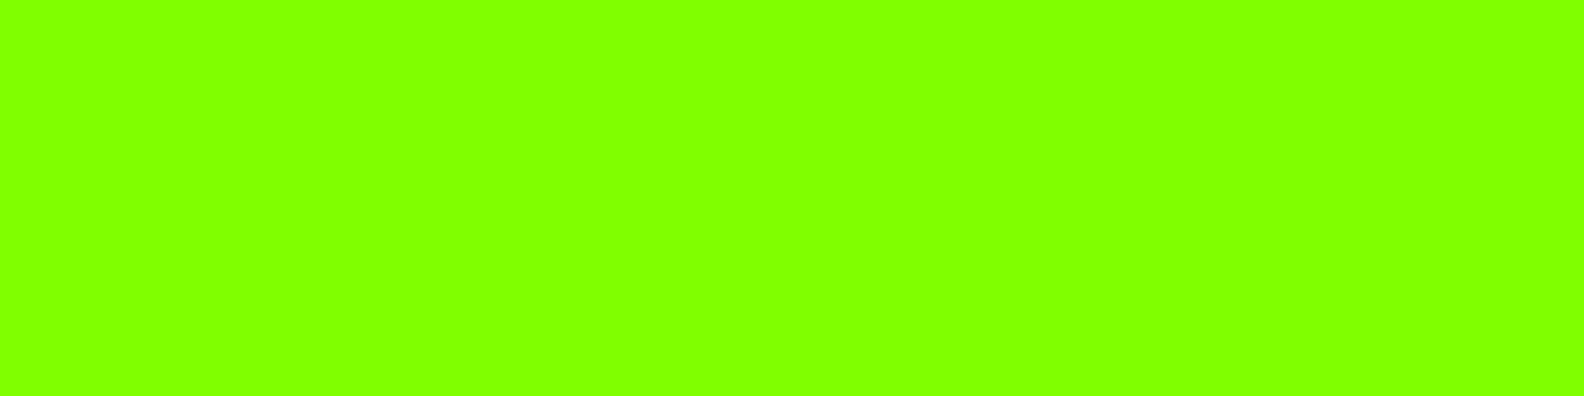 1584x396 Chartreuse For Web Solid Color Background